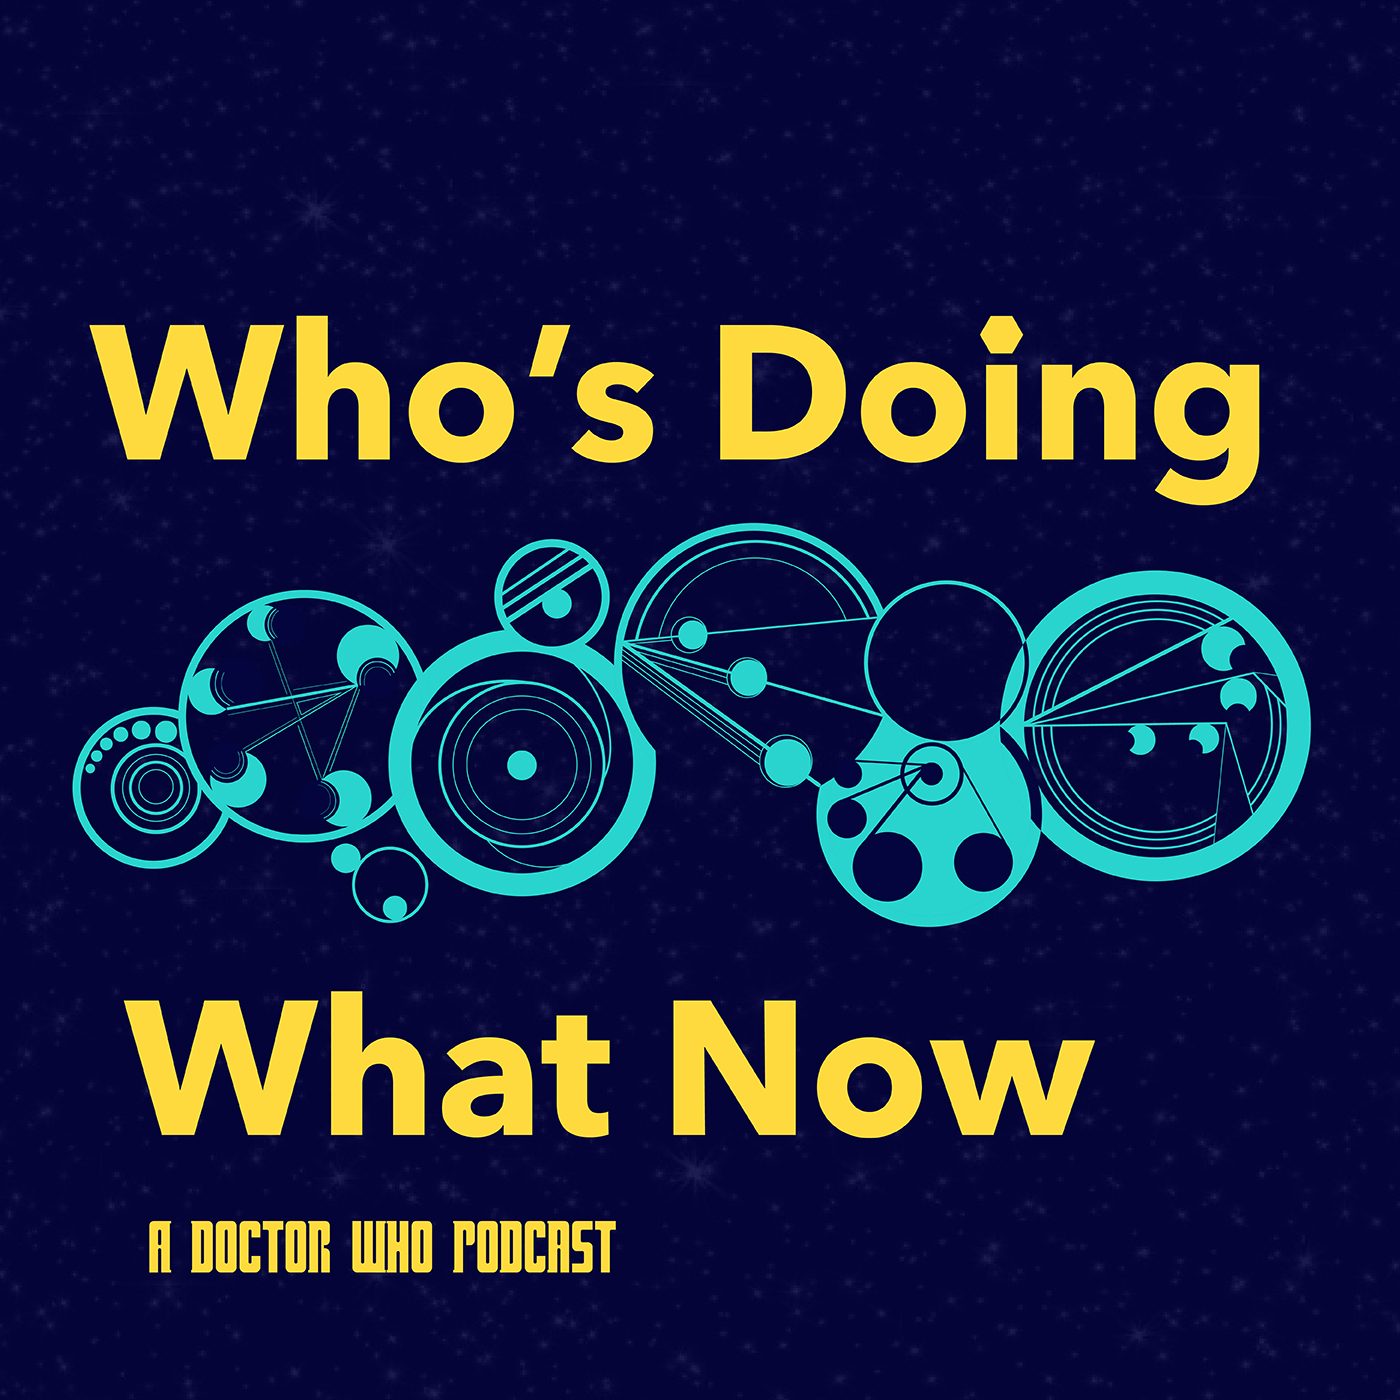 Who's Doing What Now - A Doctor Who Podcast show art